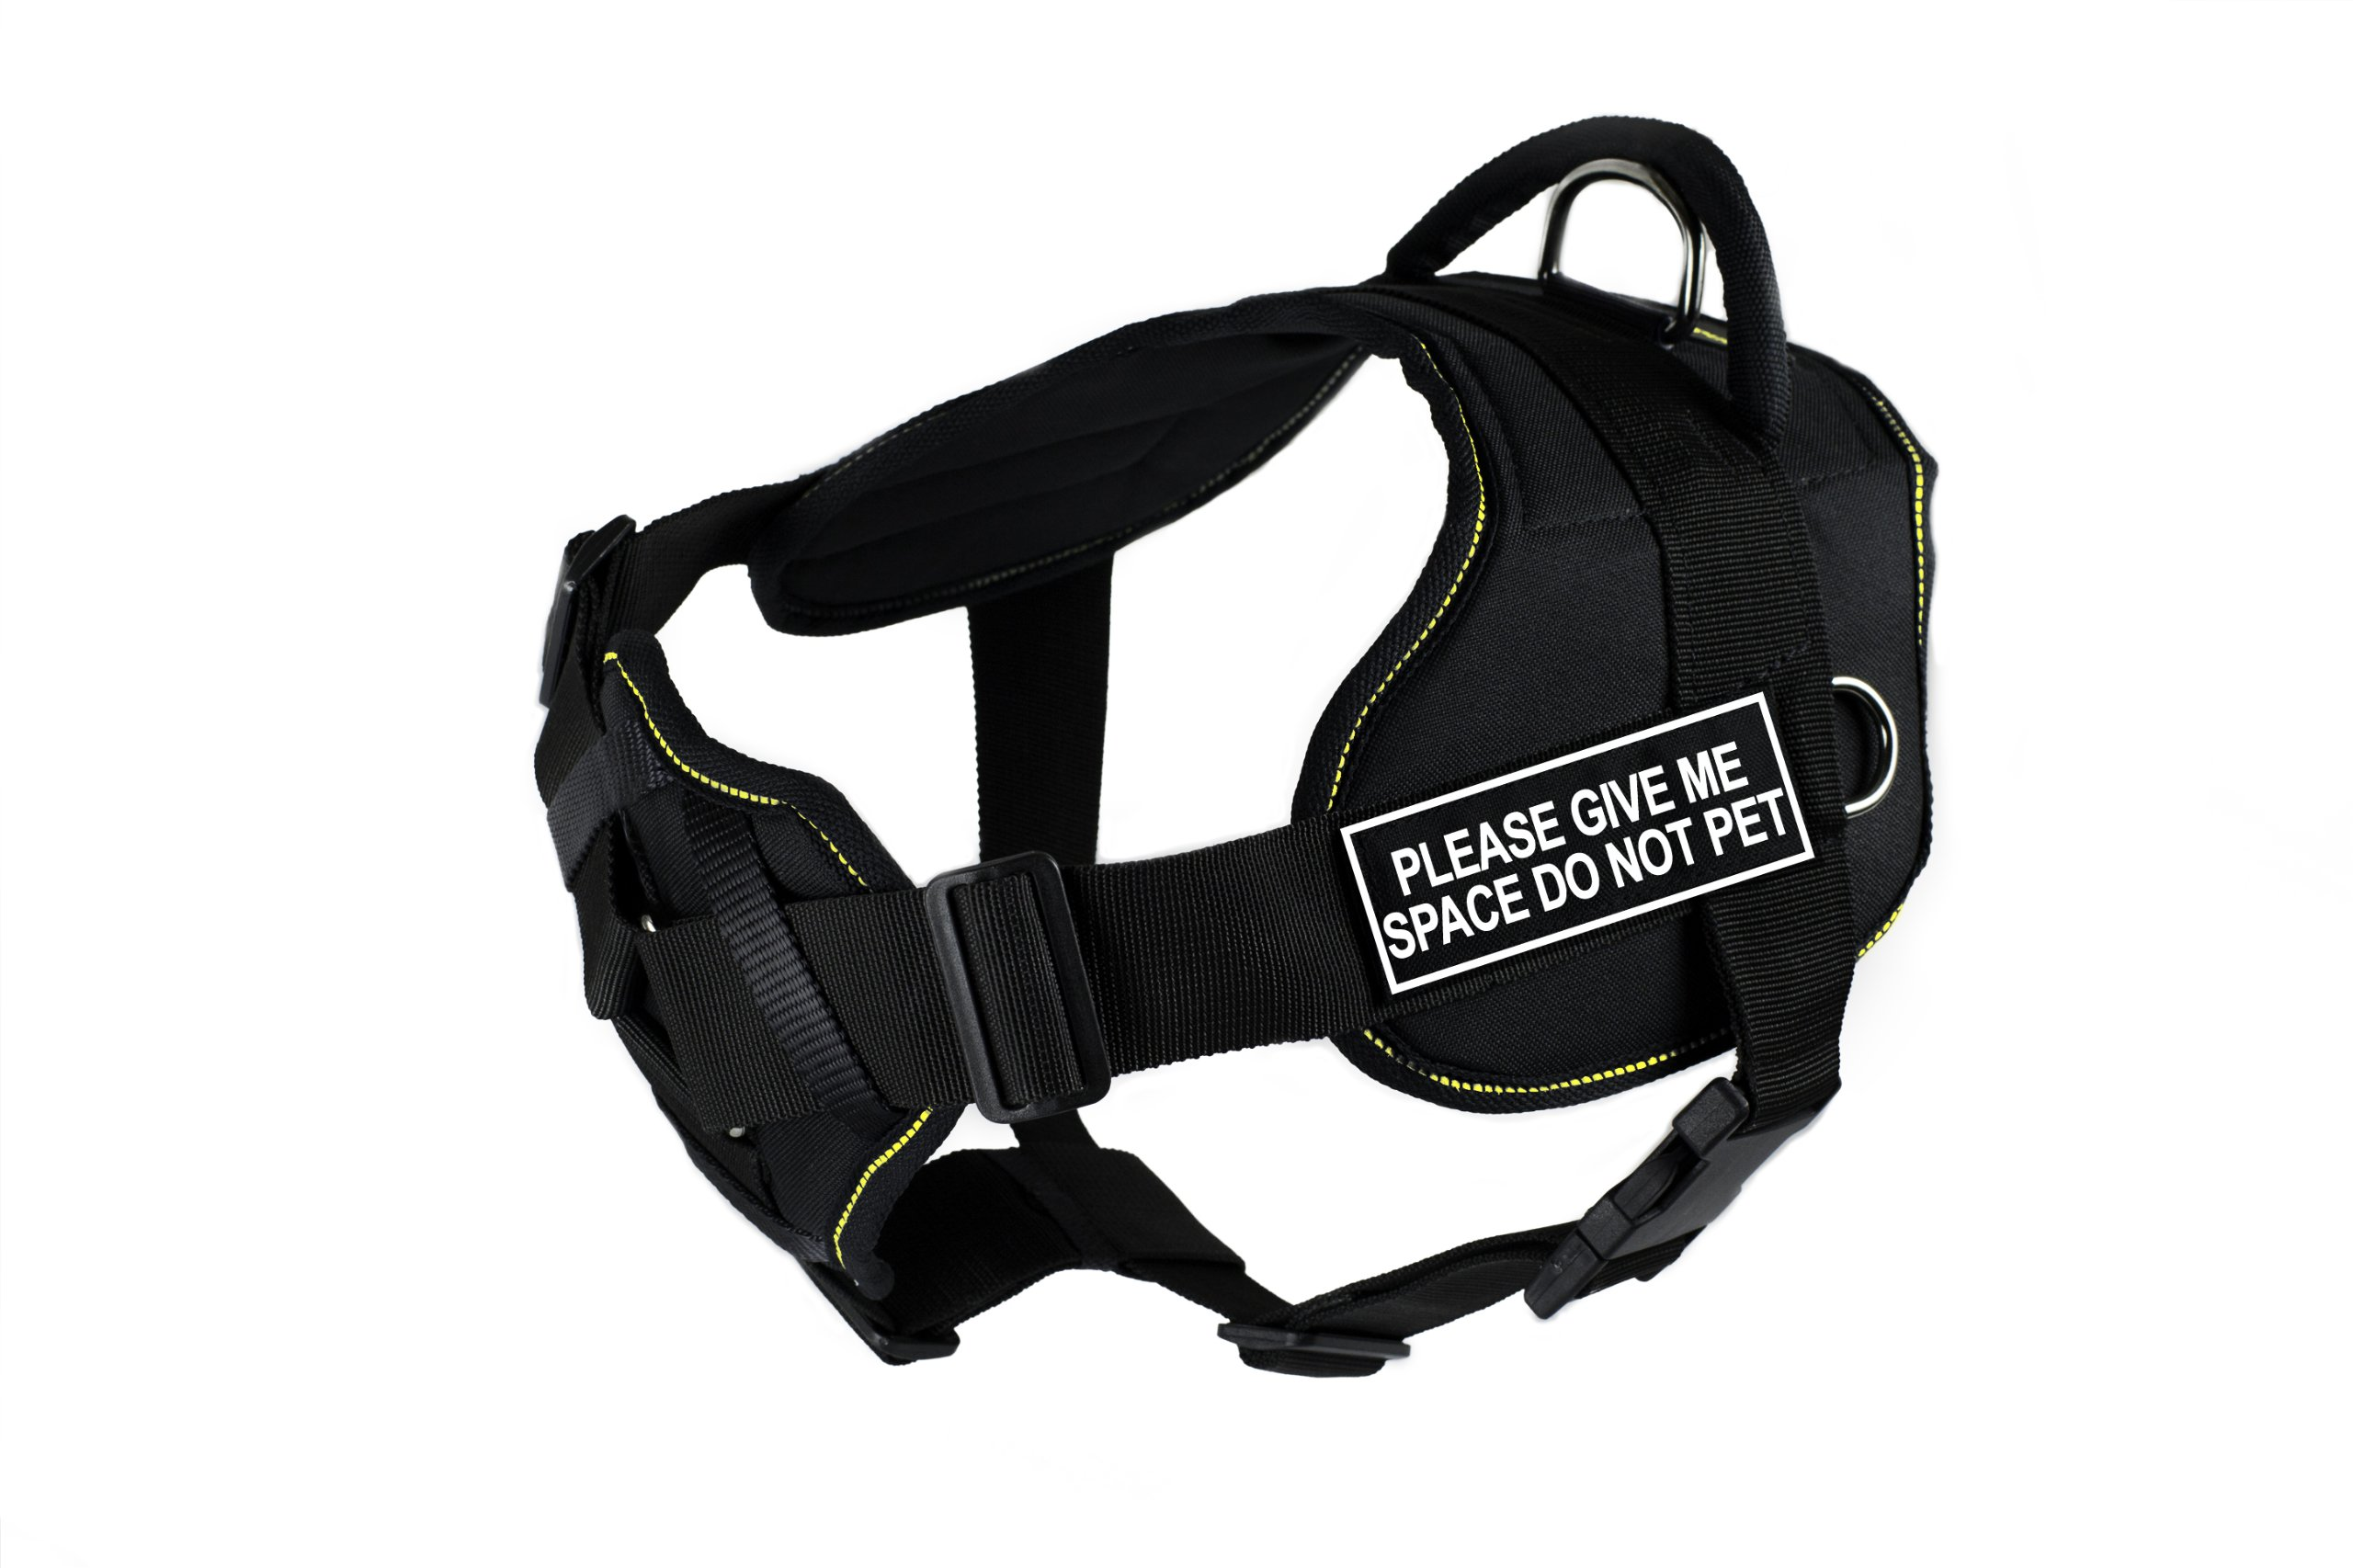 Dean & Tyler Fun Harness with Padded Chest Piece, Please Give Me Space Do Not Pet, Large, Black with Yellow Trim